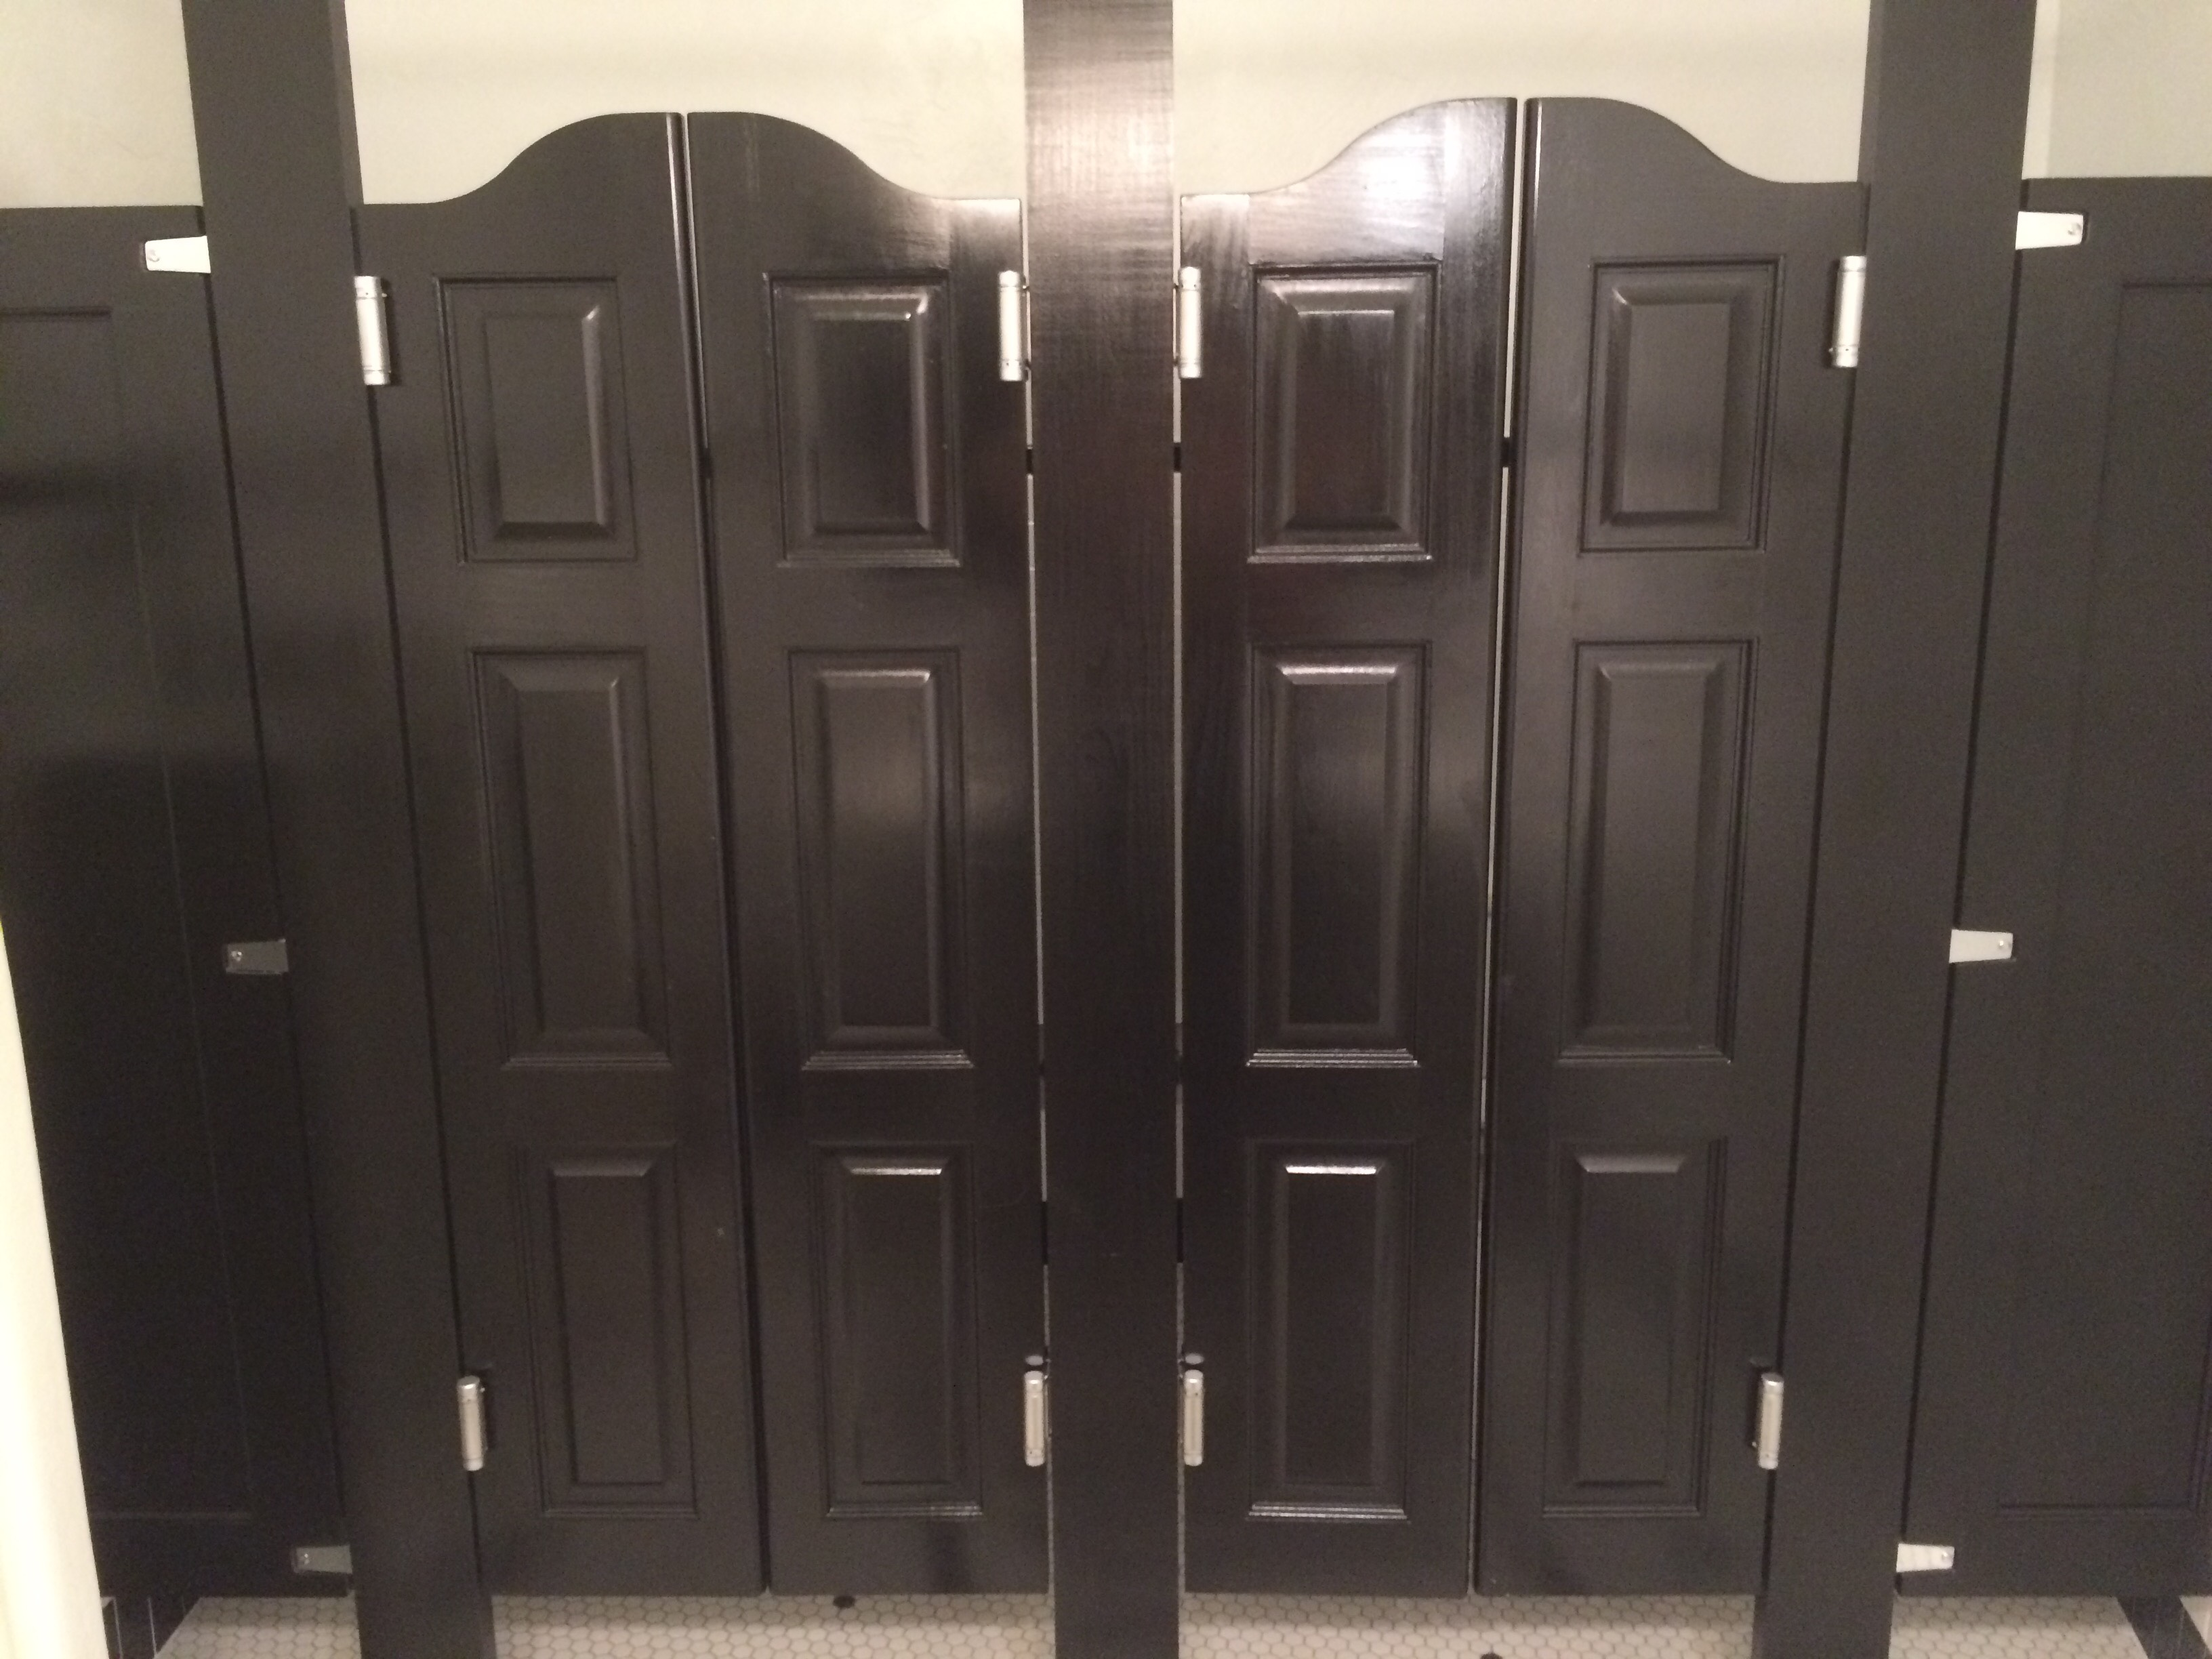 Commercial Bathroom Cafe Doors